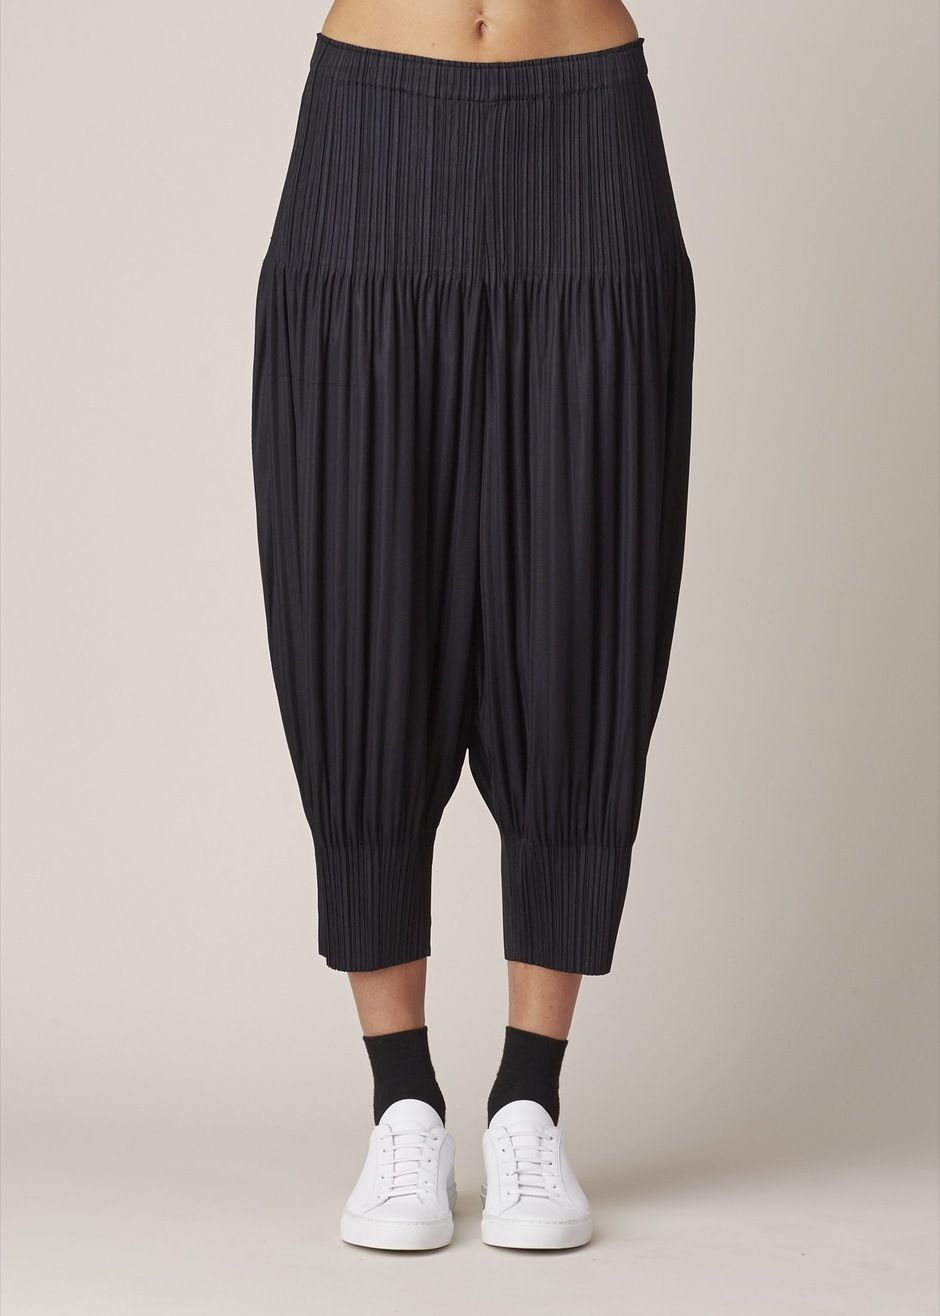 Issey Miyake PLEATS PLEASE Pull-On Jogger Pant (Black)